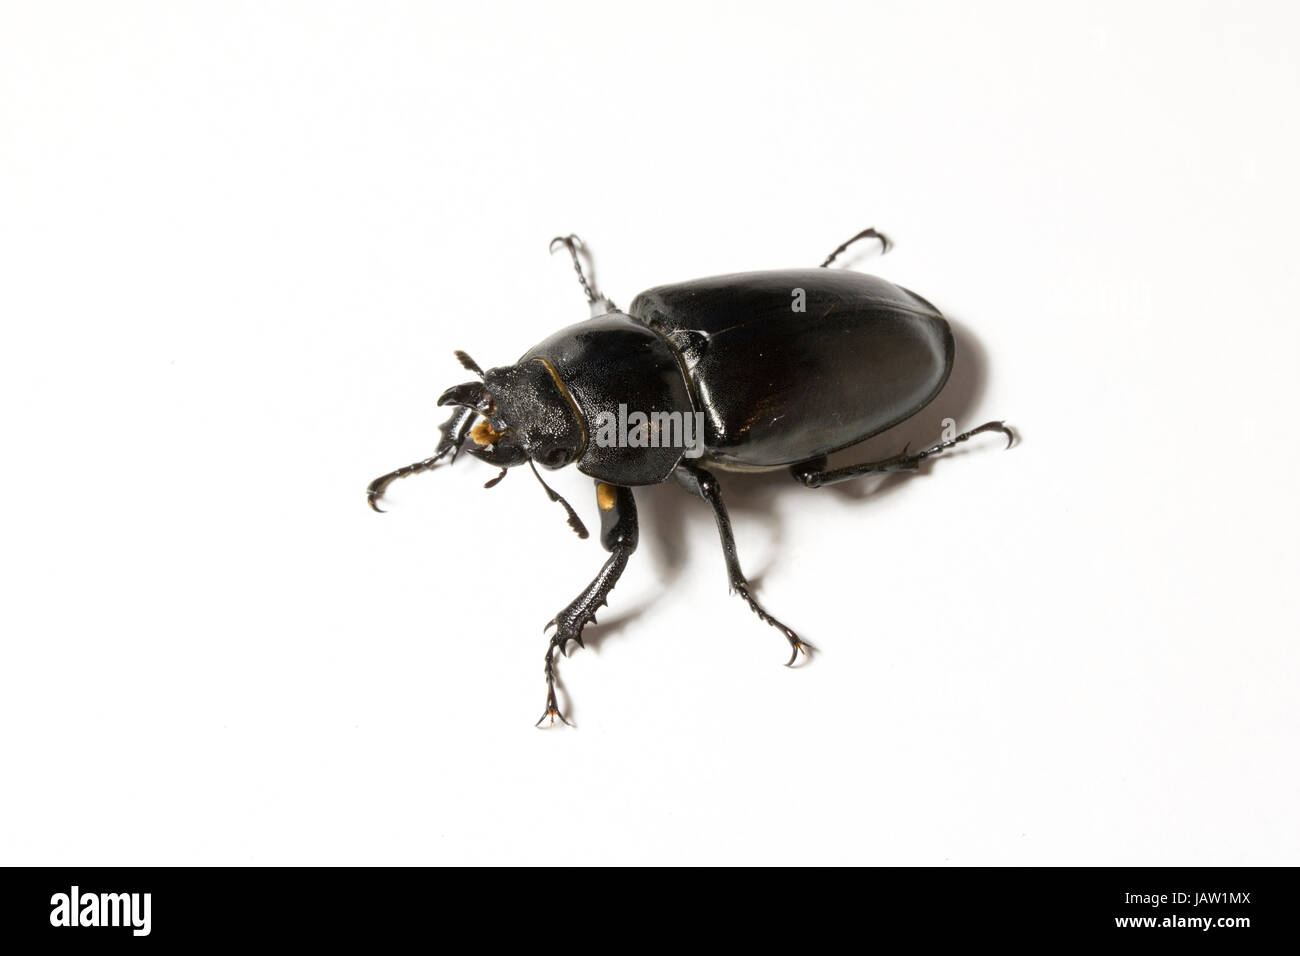 Close Up of a Female United Kingdom Stag Beetle - Stock Image